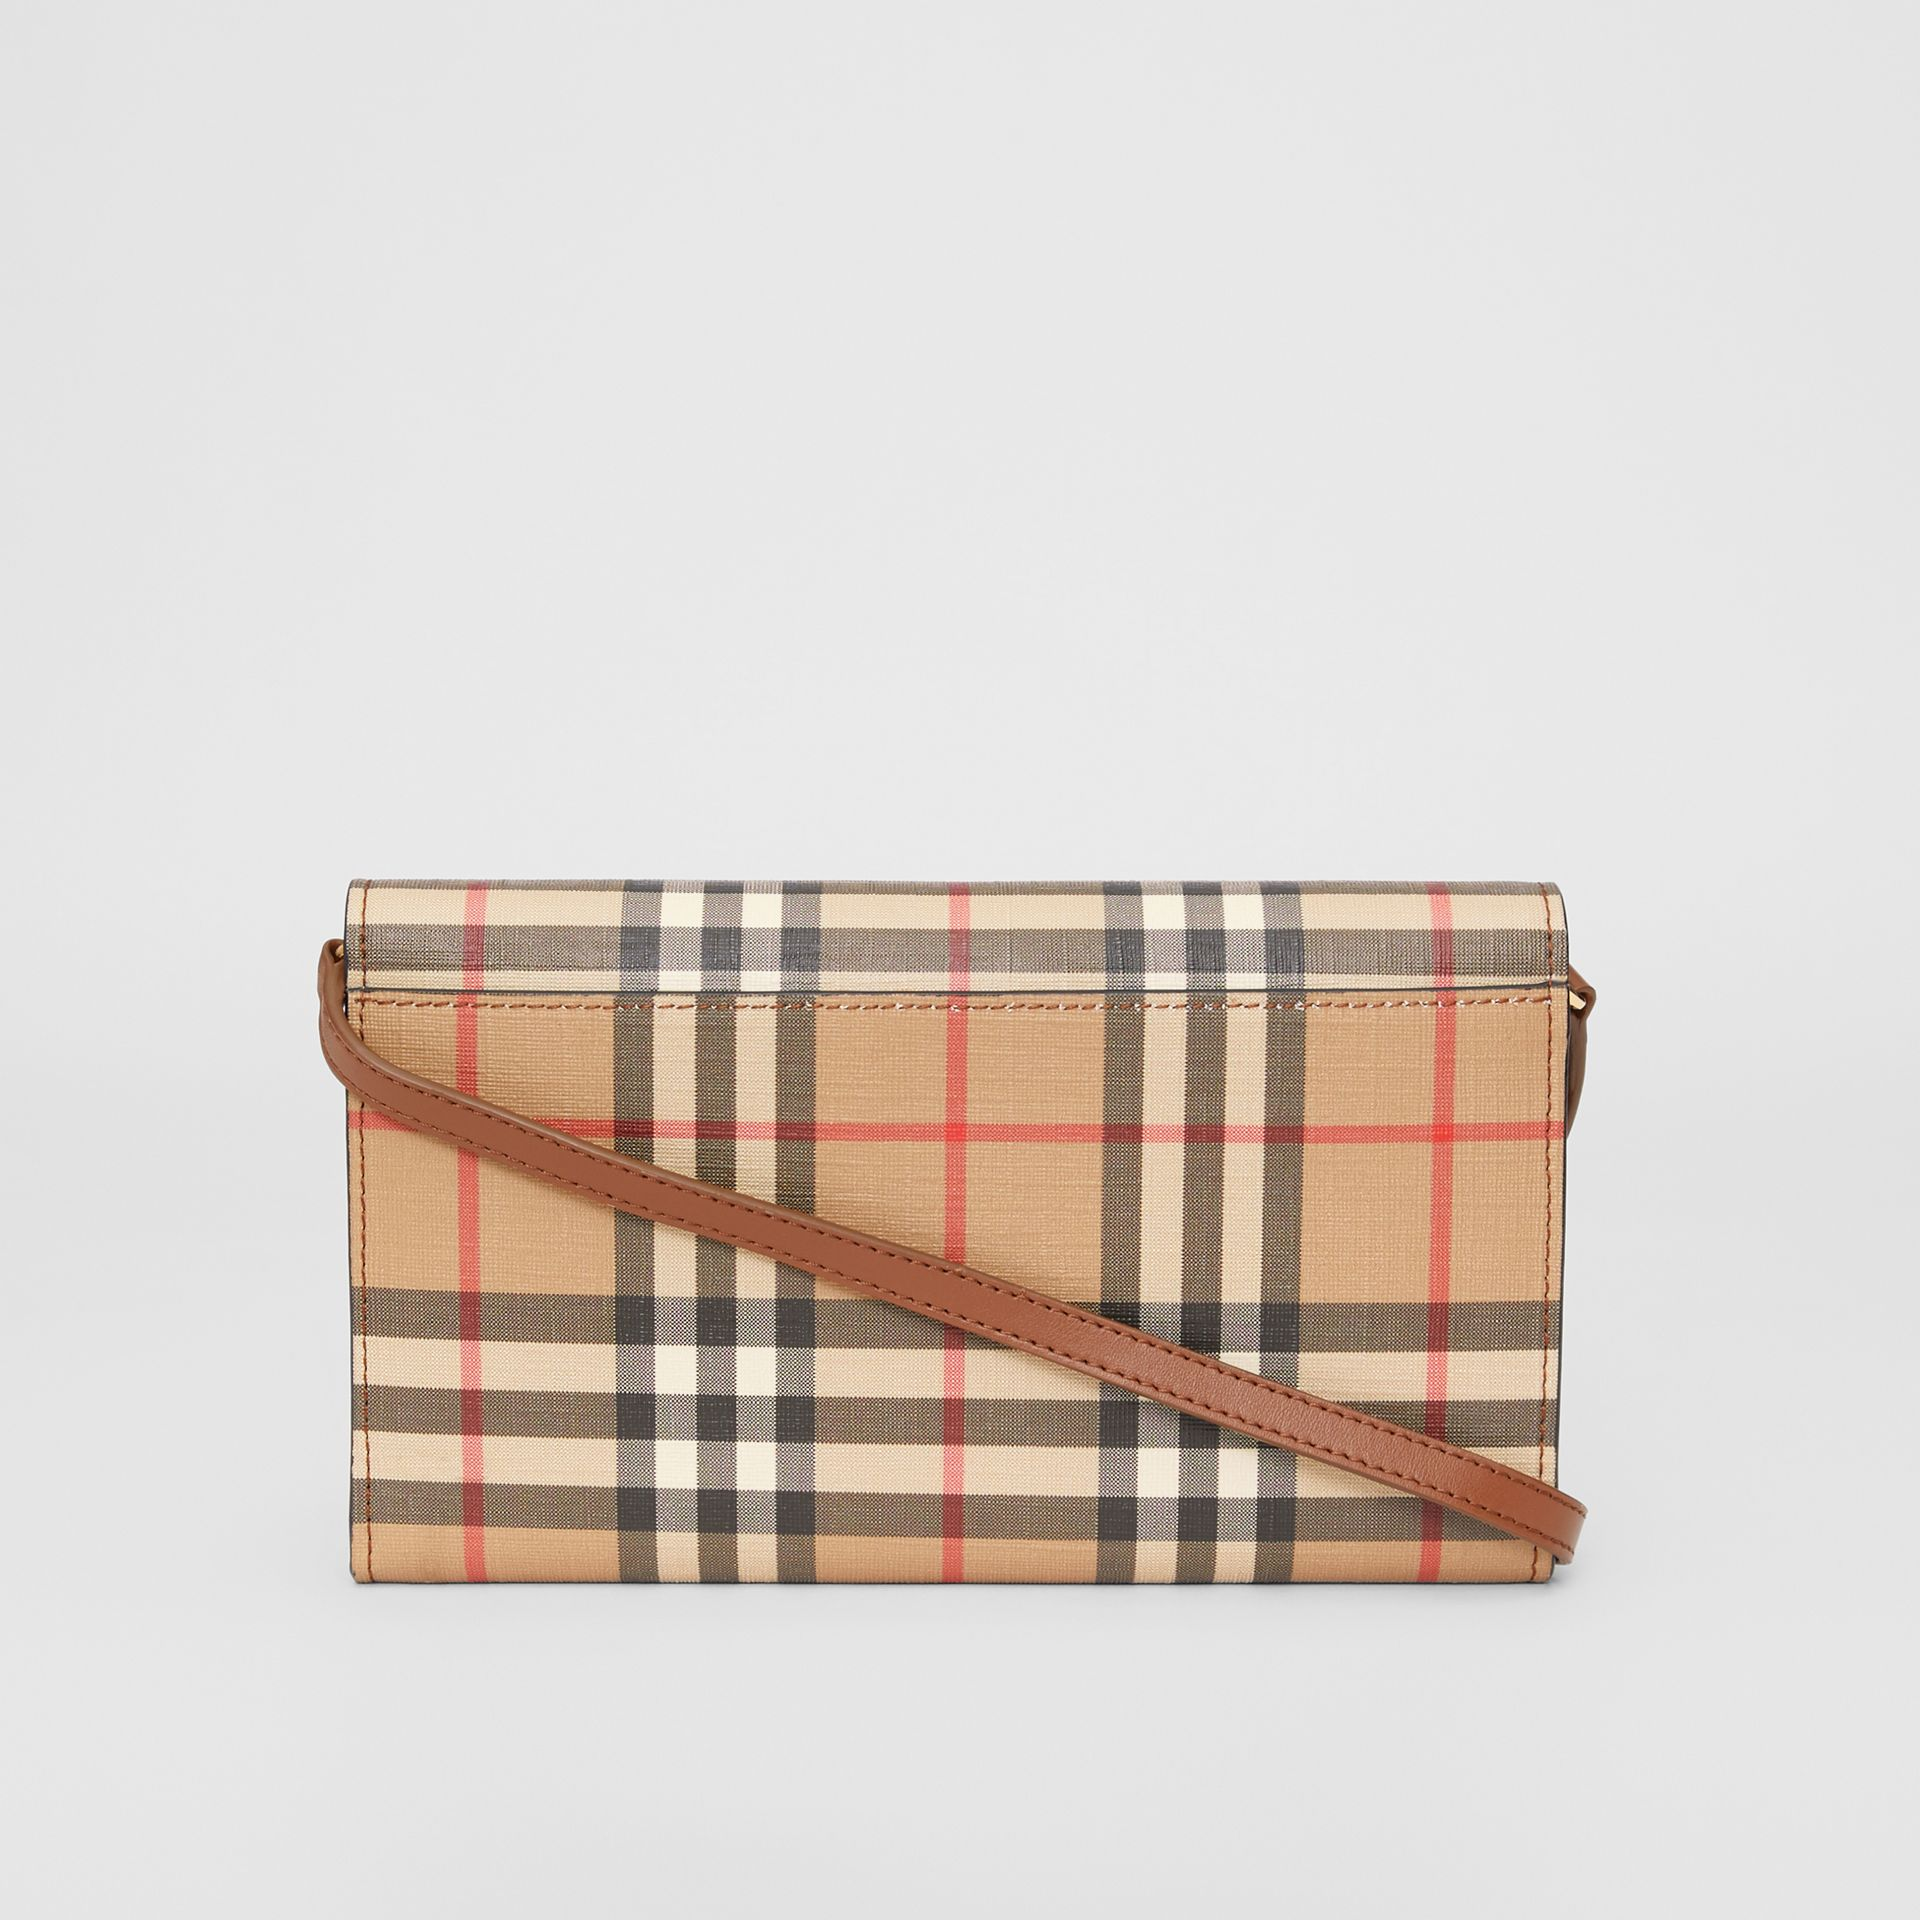 Portefeuille Vintage check avec sangle amovible (Brun Malt) - Femme | Burberry Canada - photo de la galerie 5